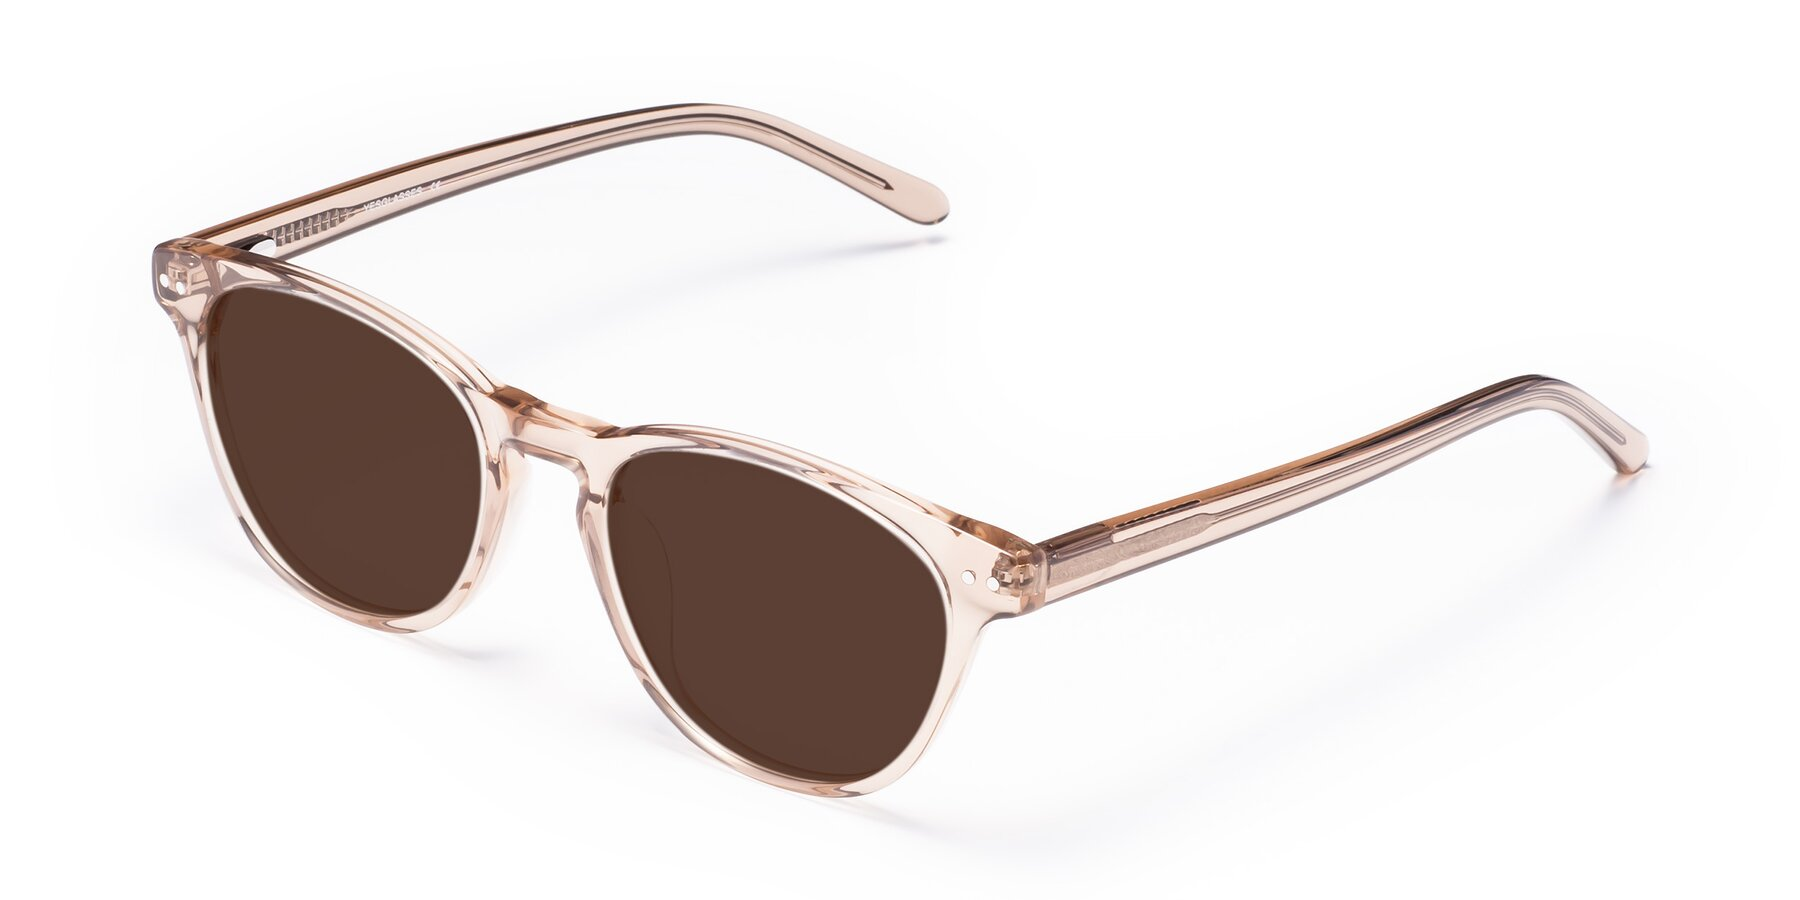 Angle of Blaze in light Brown with Brown Tinted Lenses